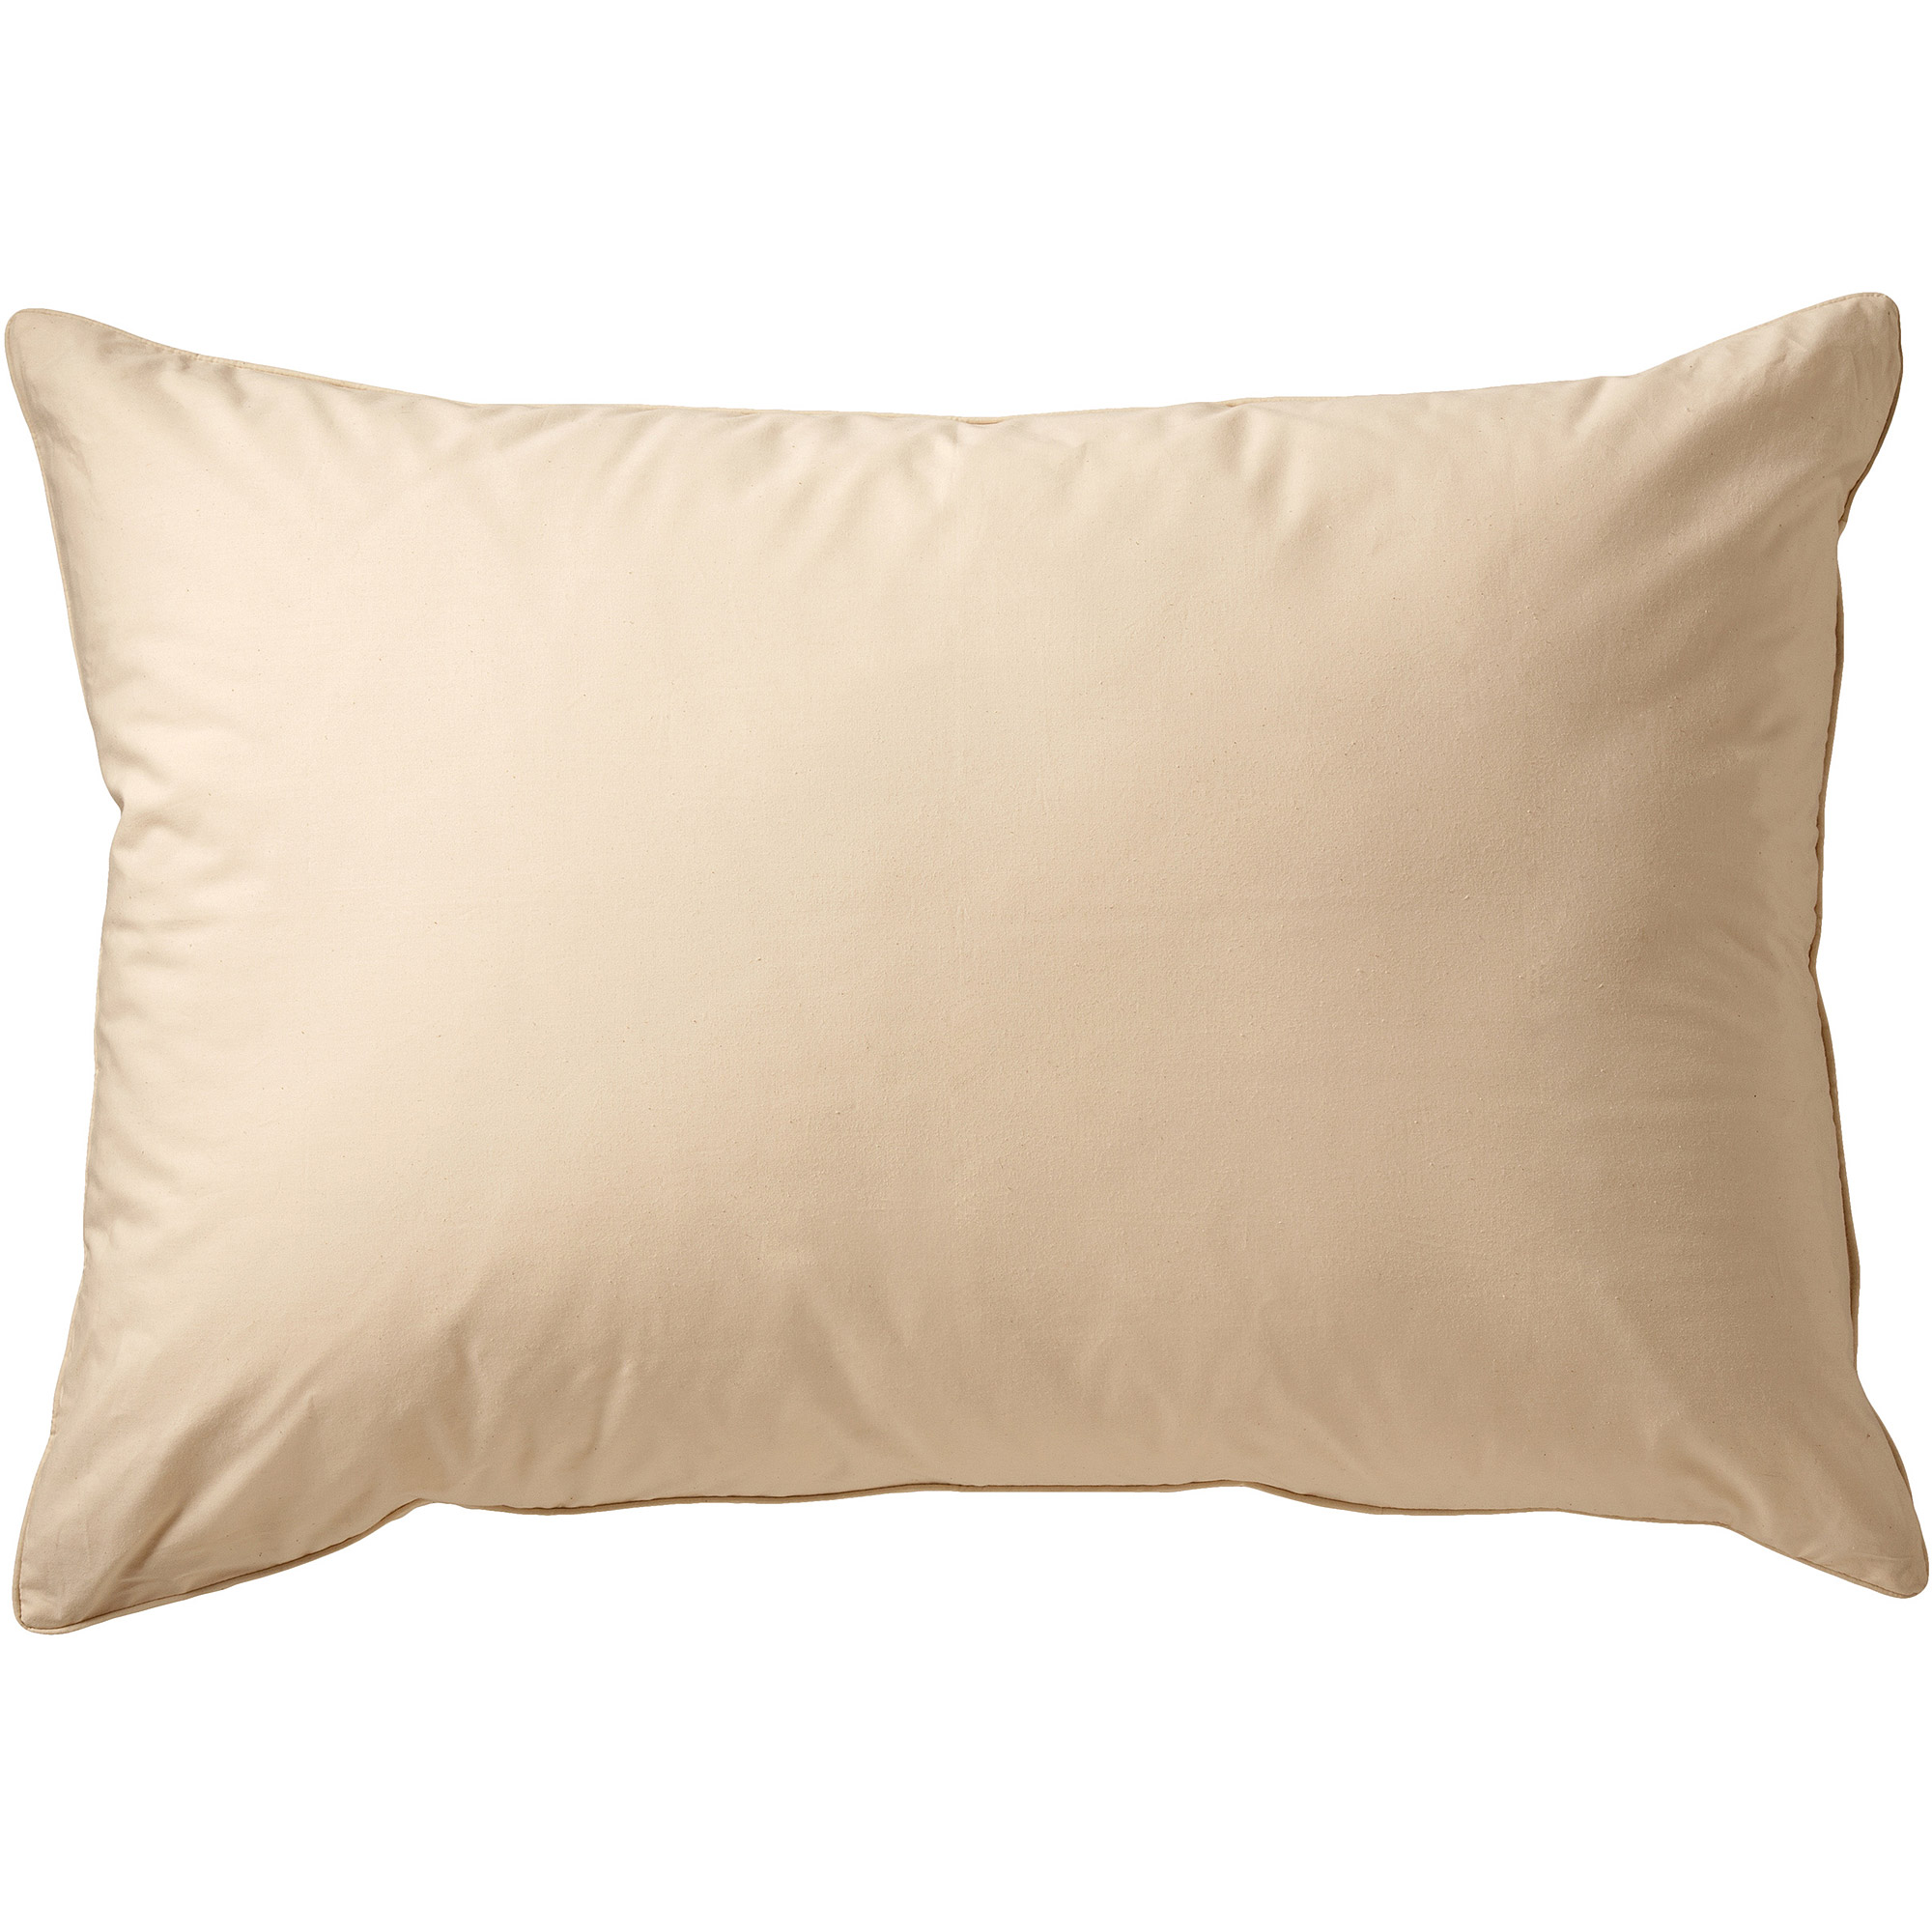 AllerEase Organic Cotton Cover Allergy Protection Pillow, Standard/Queen (20 x 28)